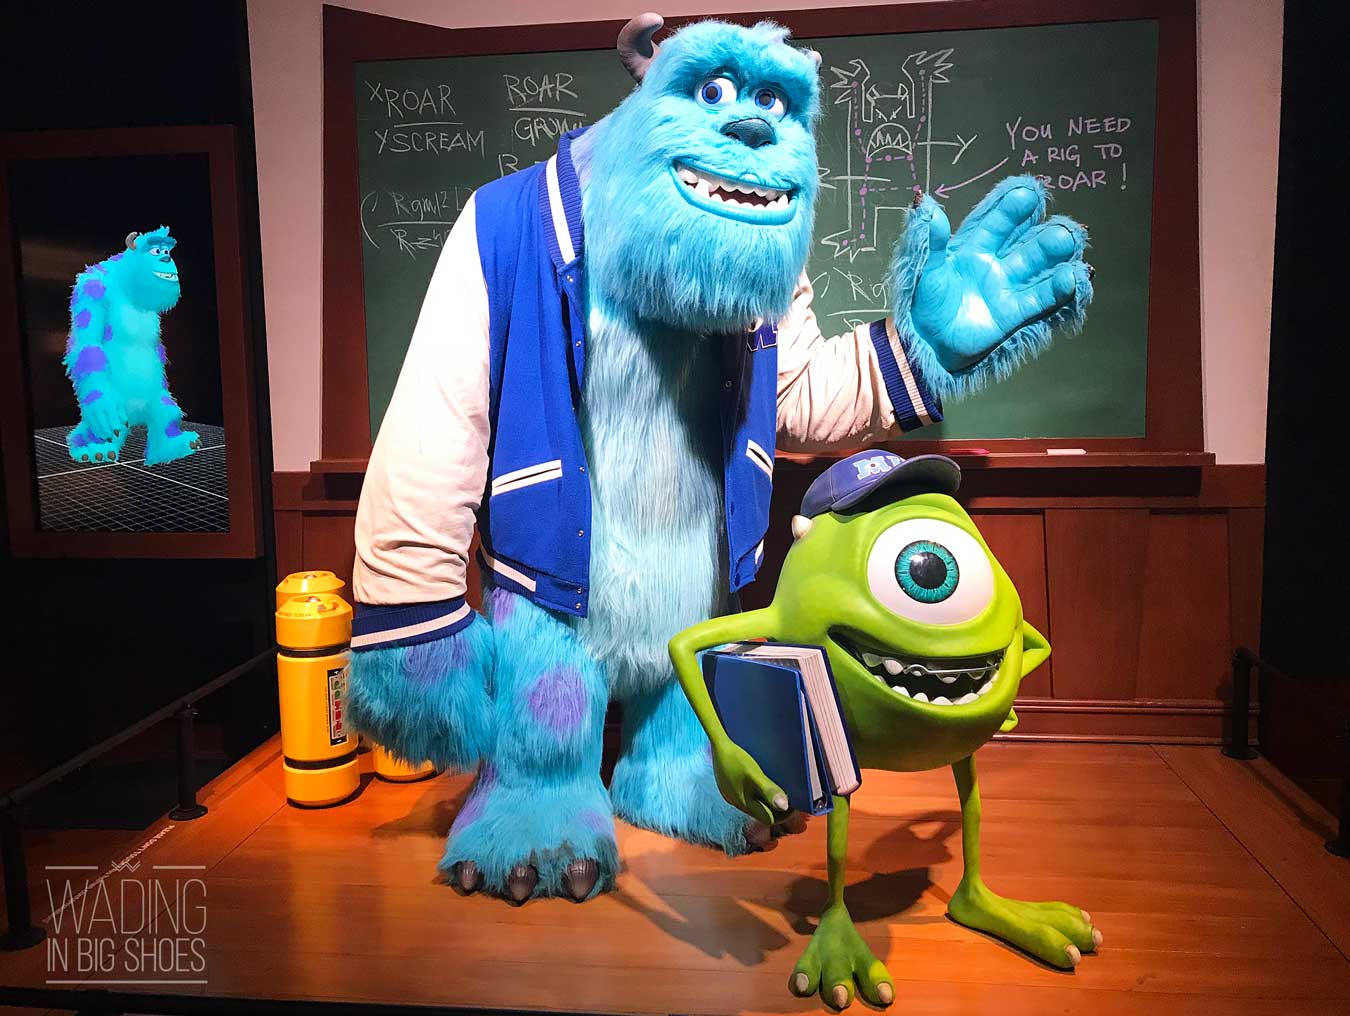 Dose Of Disney: The Science Behind Pixar At The Henry Ford Museum [via Wading in Big Shoes]